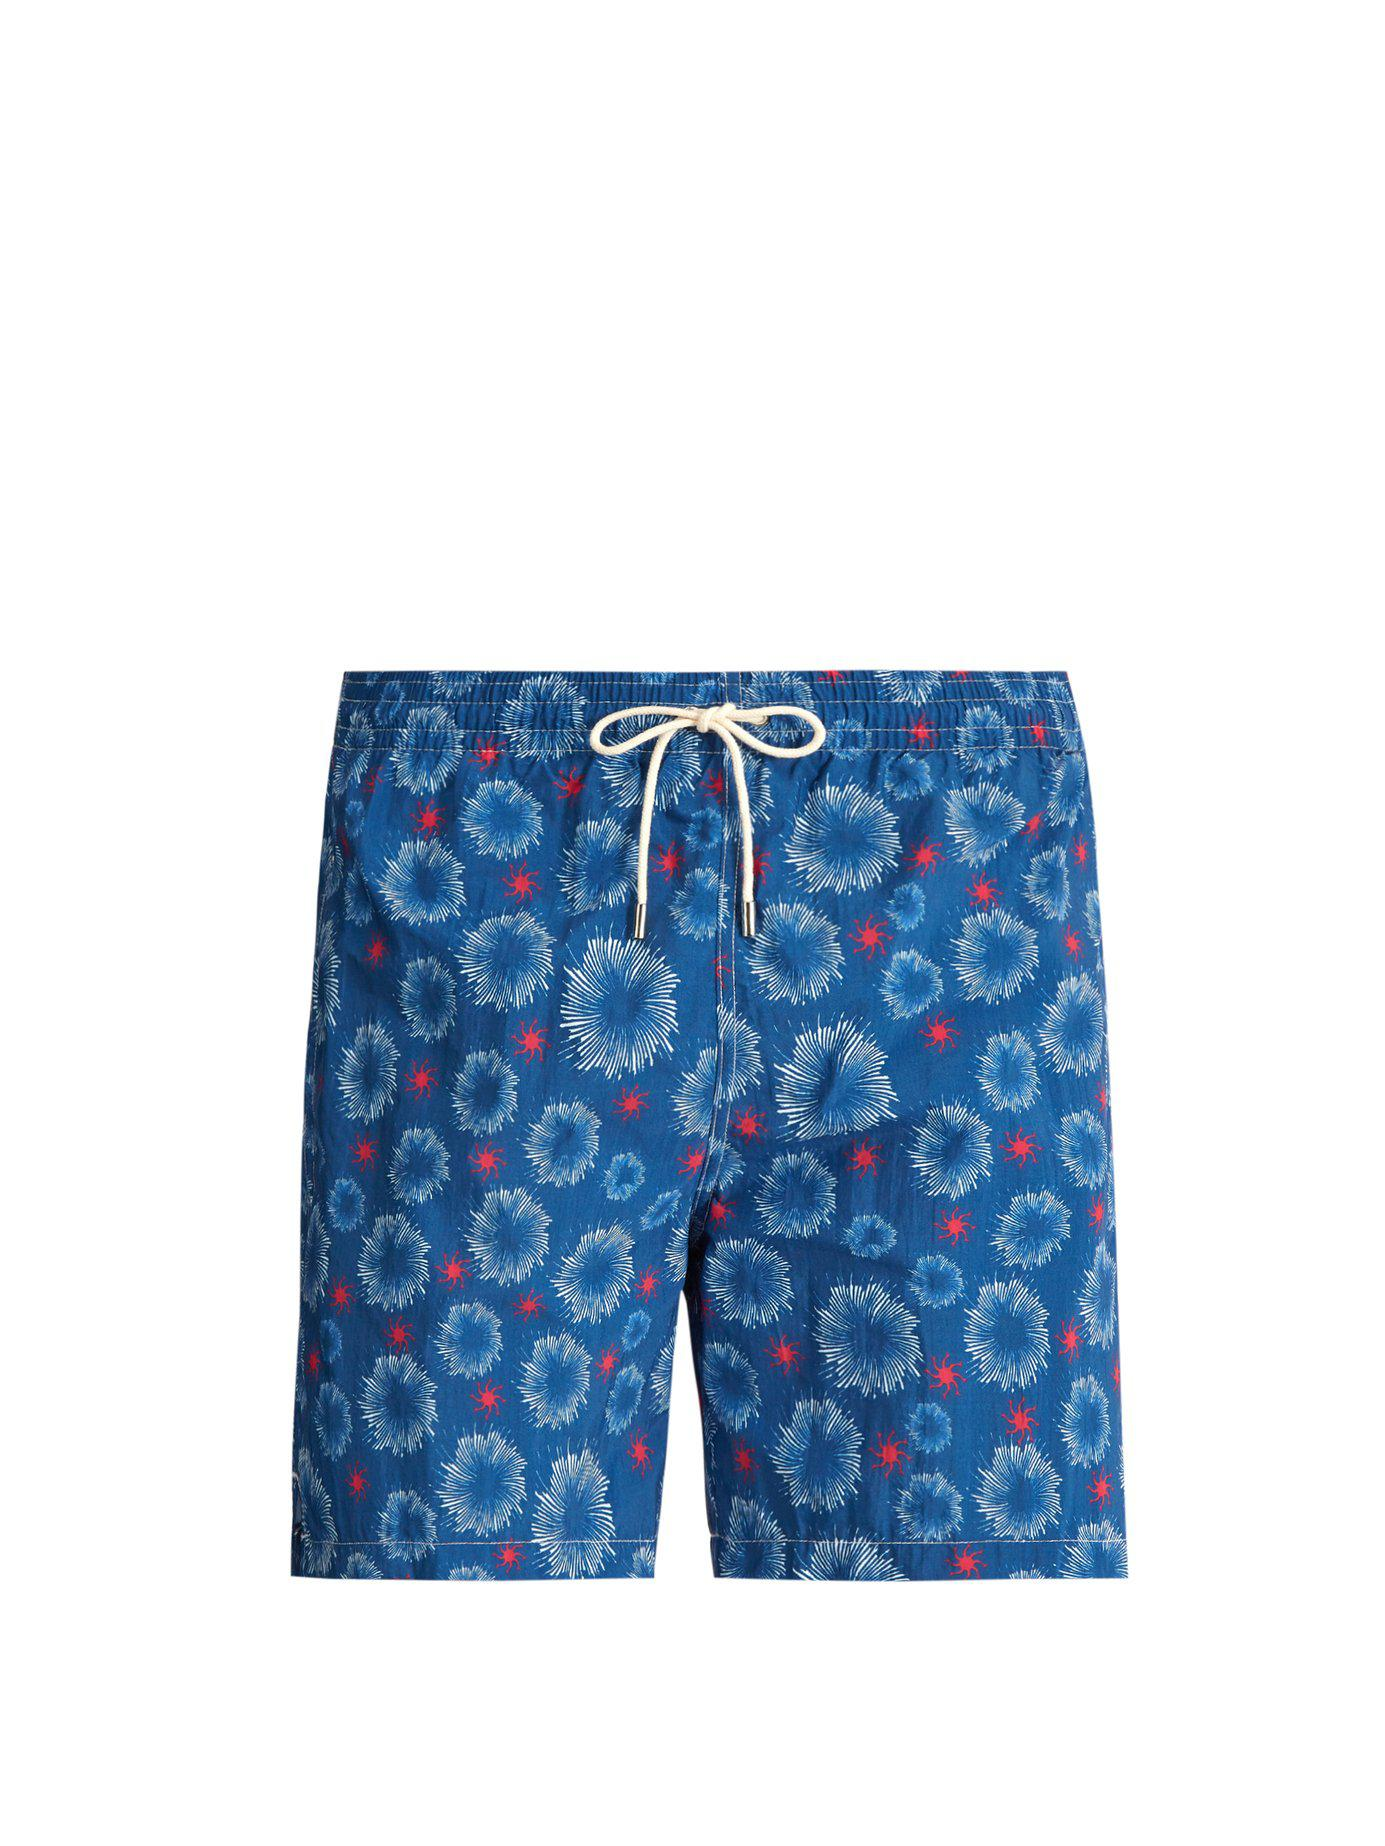 0ad7b21ebf Lyst - Le Sirenuse Starfish Print Swim Shorts in Blue for Men